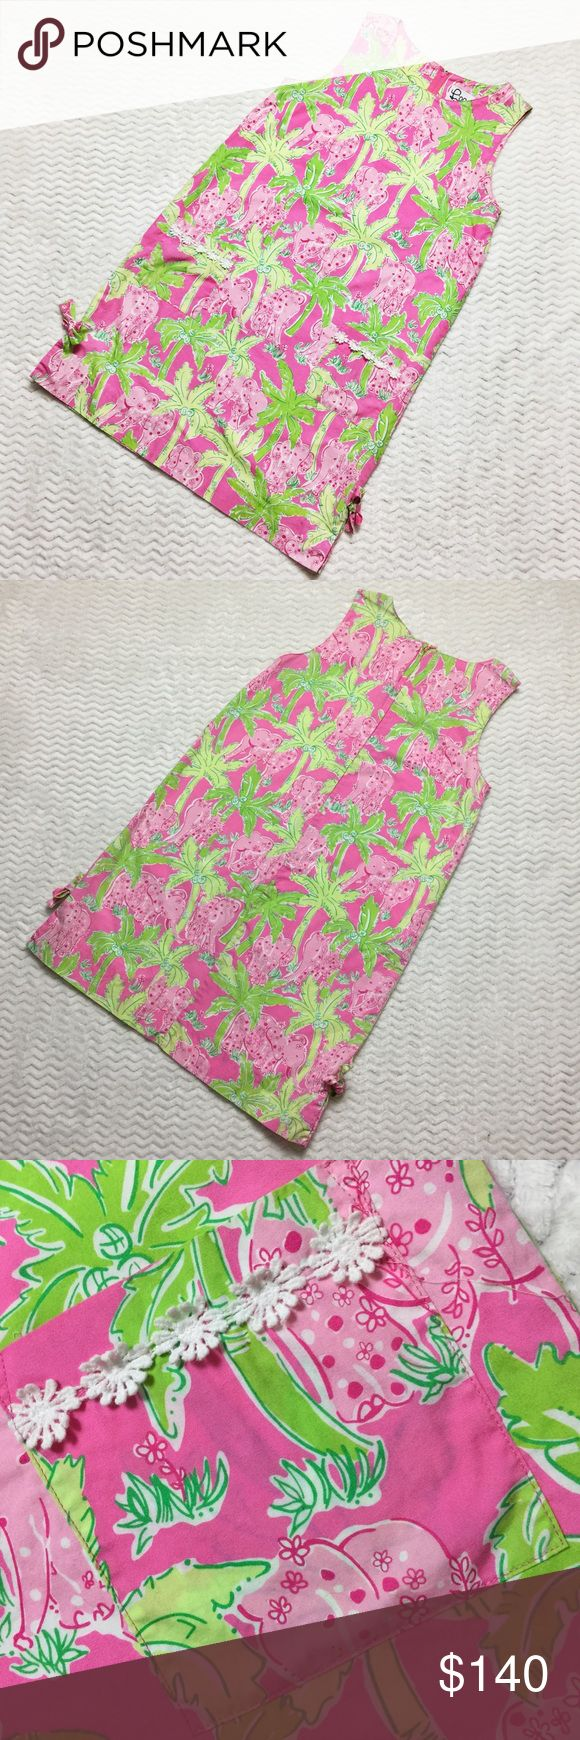 "❌SOLD❌ Lilly Pulitzer Taboo With Elephants dress It doesn't get more classic than this Lilly Pulitzer shift! This is a sleeveless dress with front patch pockets featuring crochet trim, tie bows at hem and comfortable relaxed fit. The print is simply amazing and one of Lilly's iconic classics--Taboo with Elephants, showcasing playful pink elephants and vibrant green palms on a dark hot pink background. Lined. Size 12. 36"" length from shoulder to hem, 19"" bust (flat across), 22.5"" waist/hip…"